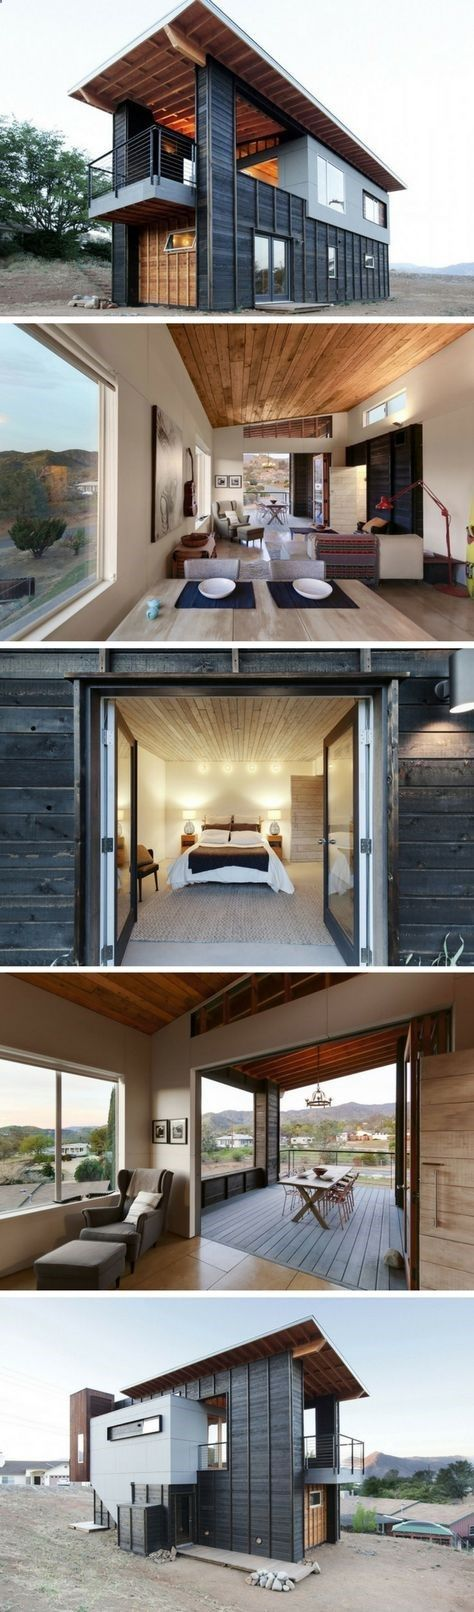 Container House - Container House - 510 CABIN STUDIO SHIPPING CONTAINER HOME - Who Else Wants Simple Step-By-Step Plans To Design And Build A Container Home From Scratch? - Who Else Wants Simple Step-By-Step Plans To Design And Build A Container Home From Scratch?